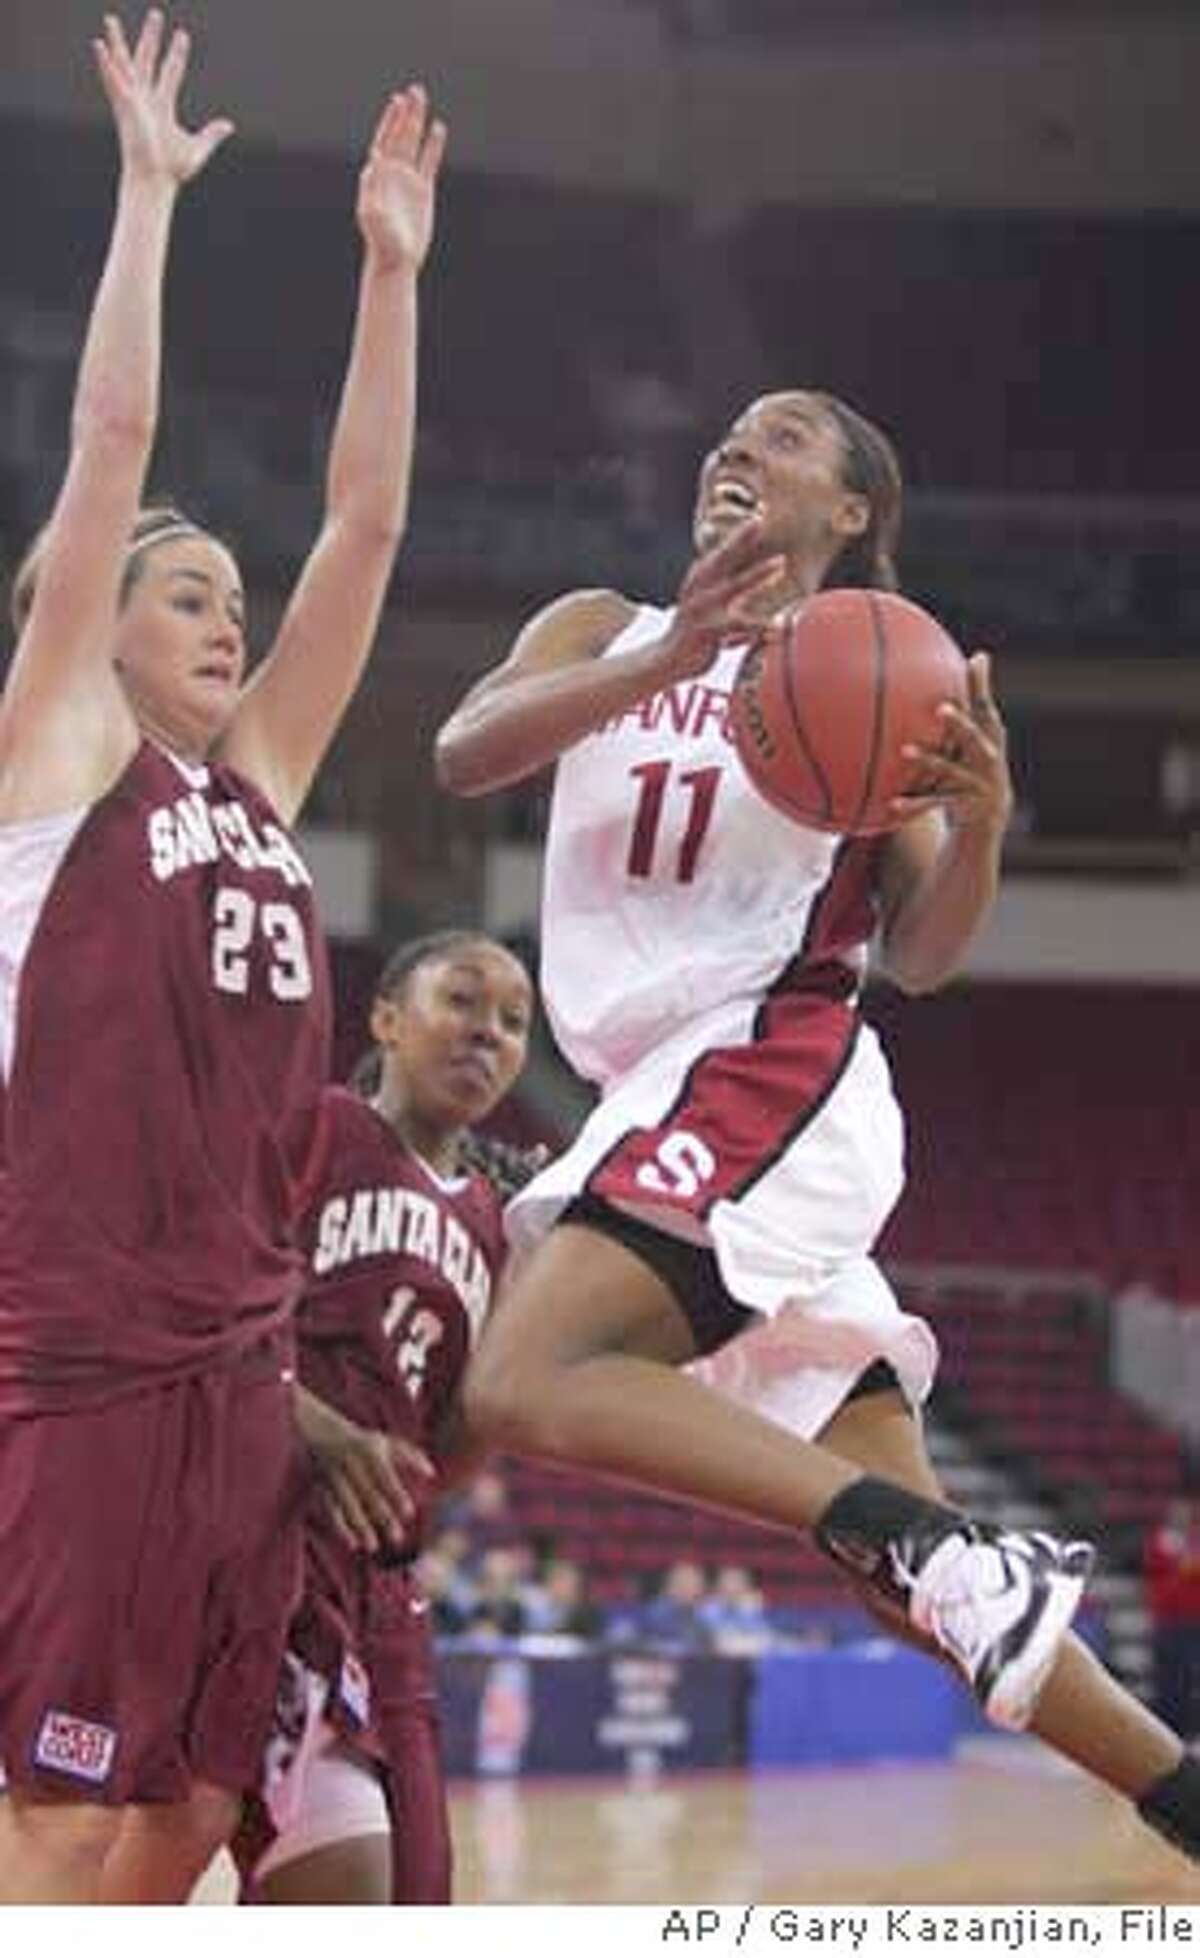 Stanford's Candice Wiggins drives to the basket past Santa Clara's Tori Markey during the first half of an NCAA tournament game Saturday, March 19, 2005, in Fresno, Calif. (AP Photo/Gary Kazanjian) Ran on: 03-20-2005 A little first-half contact spurred Candice Wiggins on to a 29-point, five-rebound performance. Ran on: 03-20-2005 A little first-half contact spurred Candice Wiggins on to a 29-point, five-rebound performance.